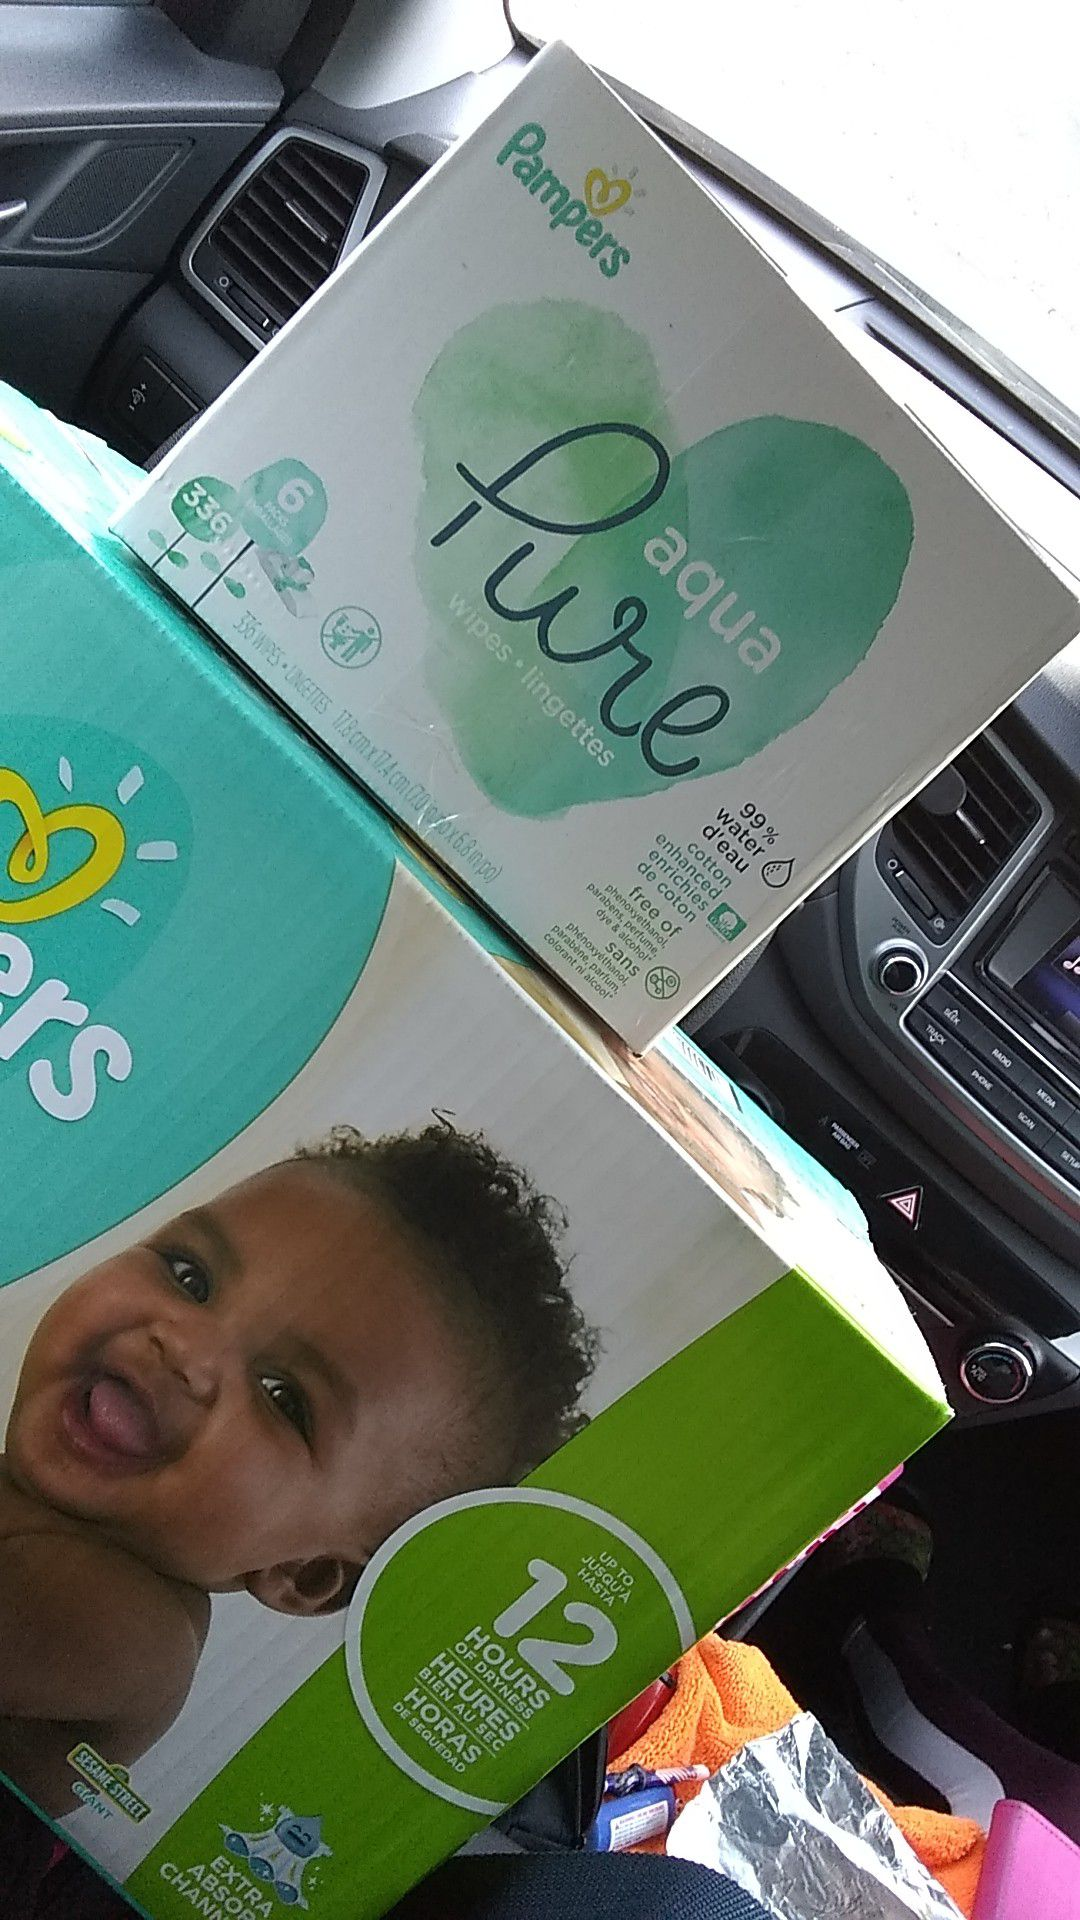 Size 3 pampers (144 diapers) and pampers aqua Pure baby wipes (6packs)